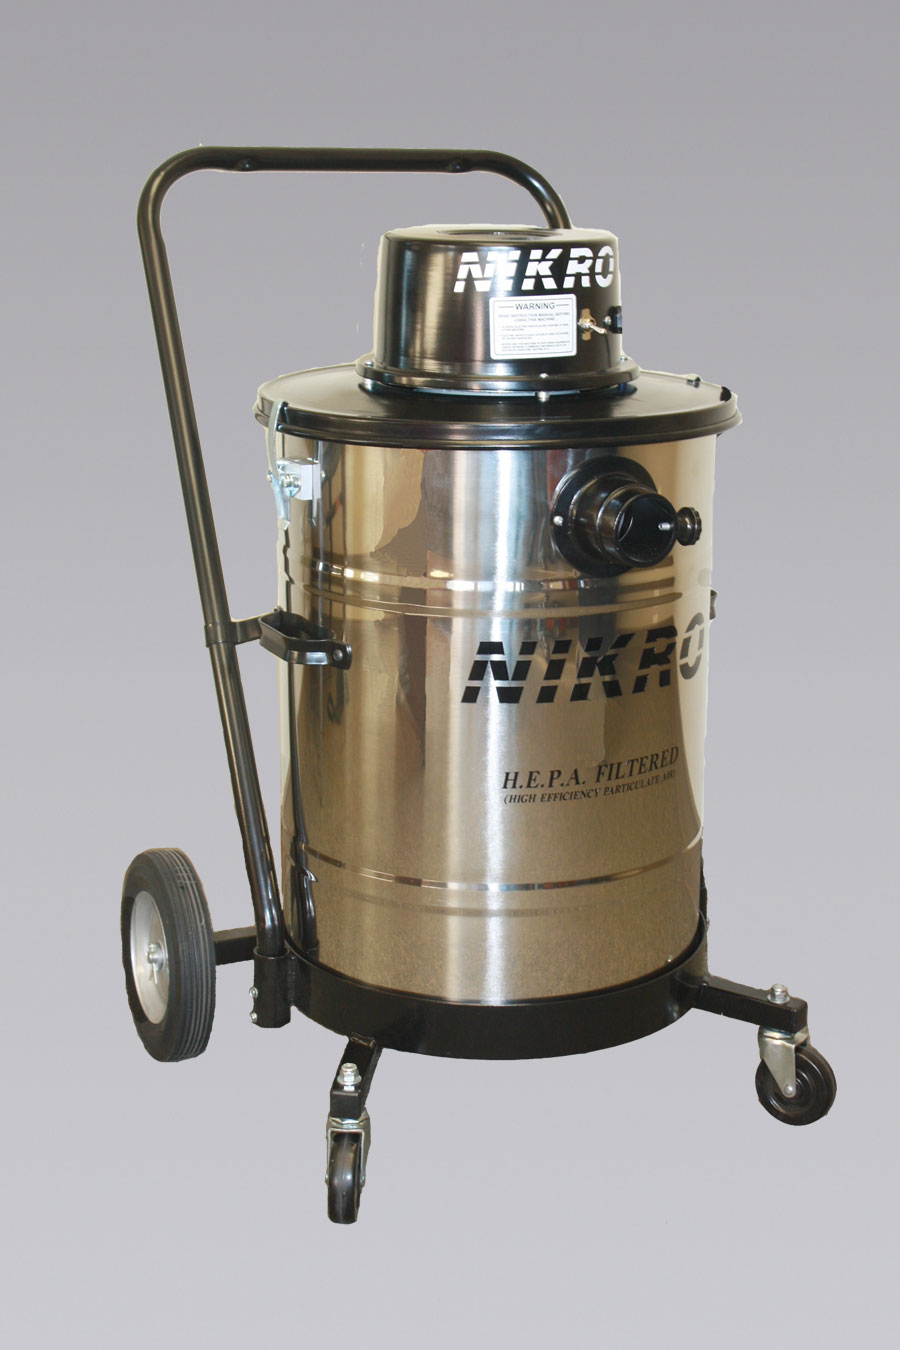 NIKRO HD15110-S - 15 Gallon Stainless Steel HEPA Vacuum (Dry) - H.E.P.A. Filtered Vacuums